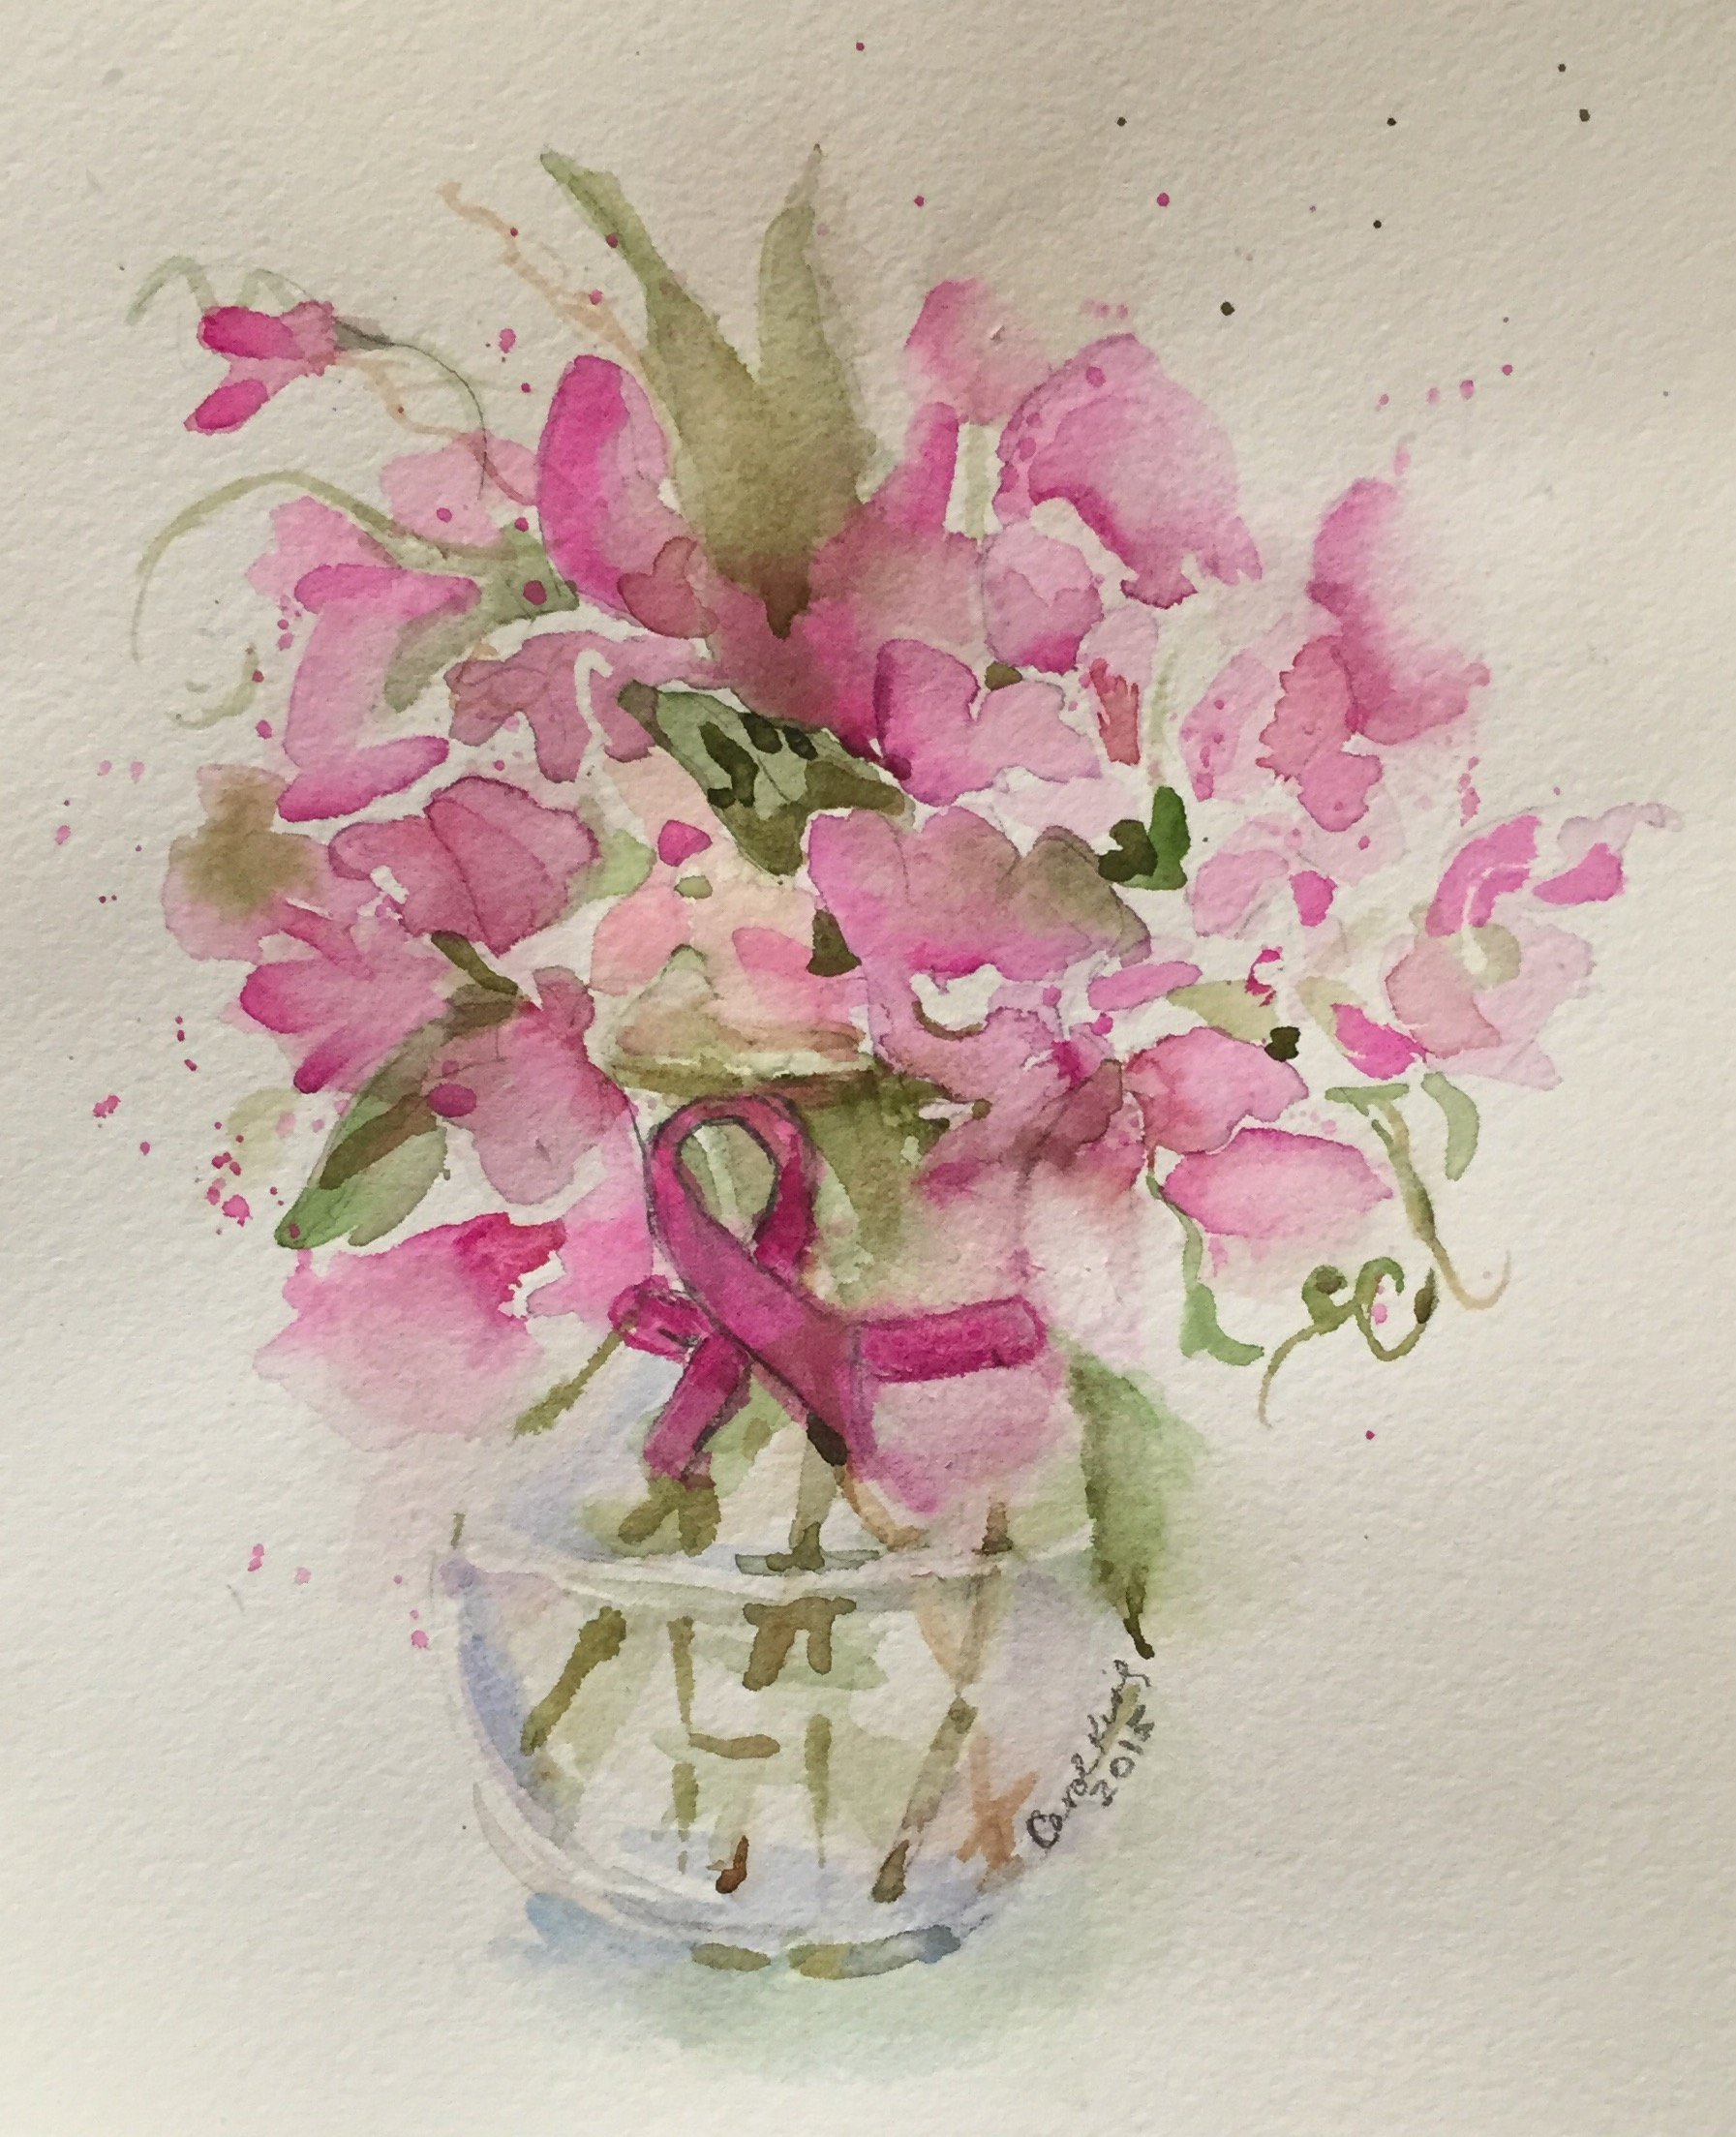 Flowers carol king drawing painting complaining - Flowers that mean friendship ...